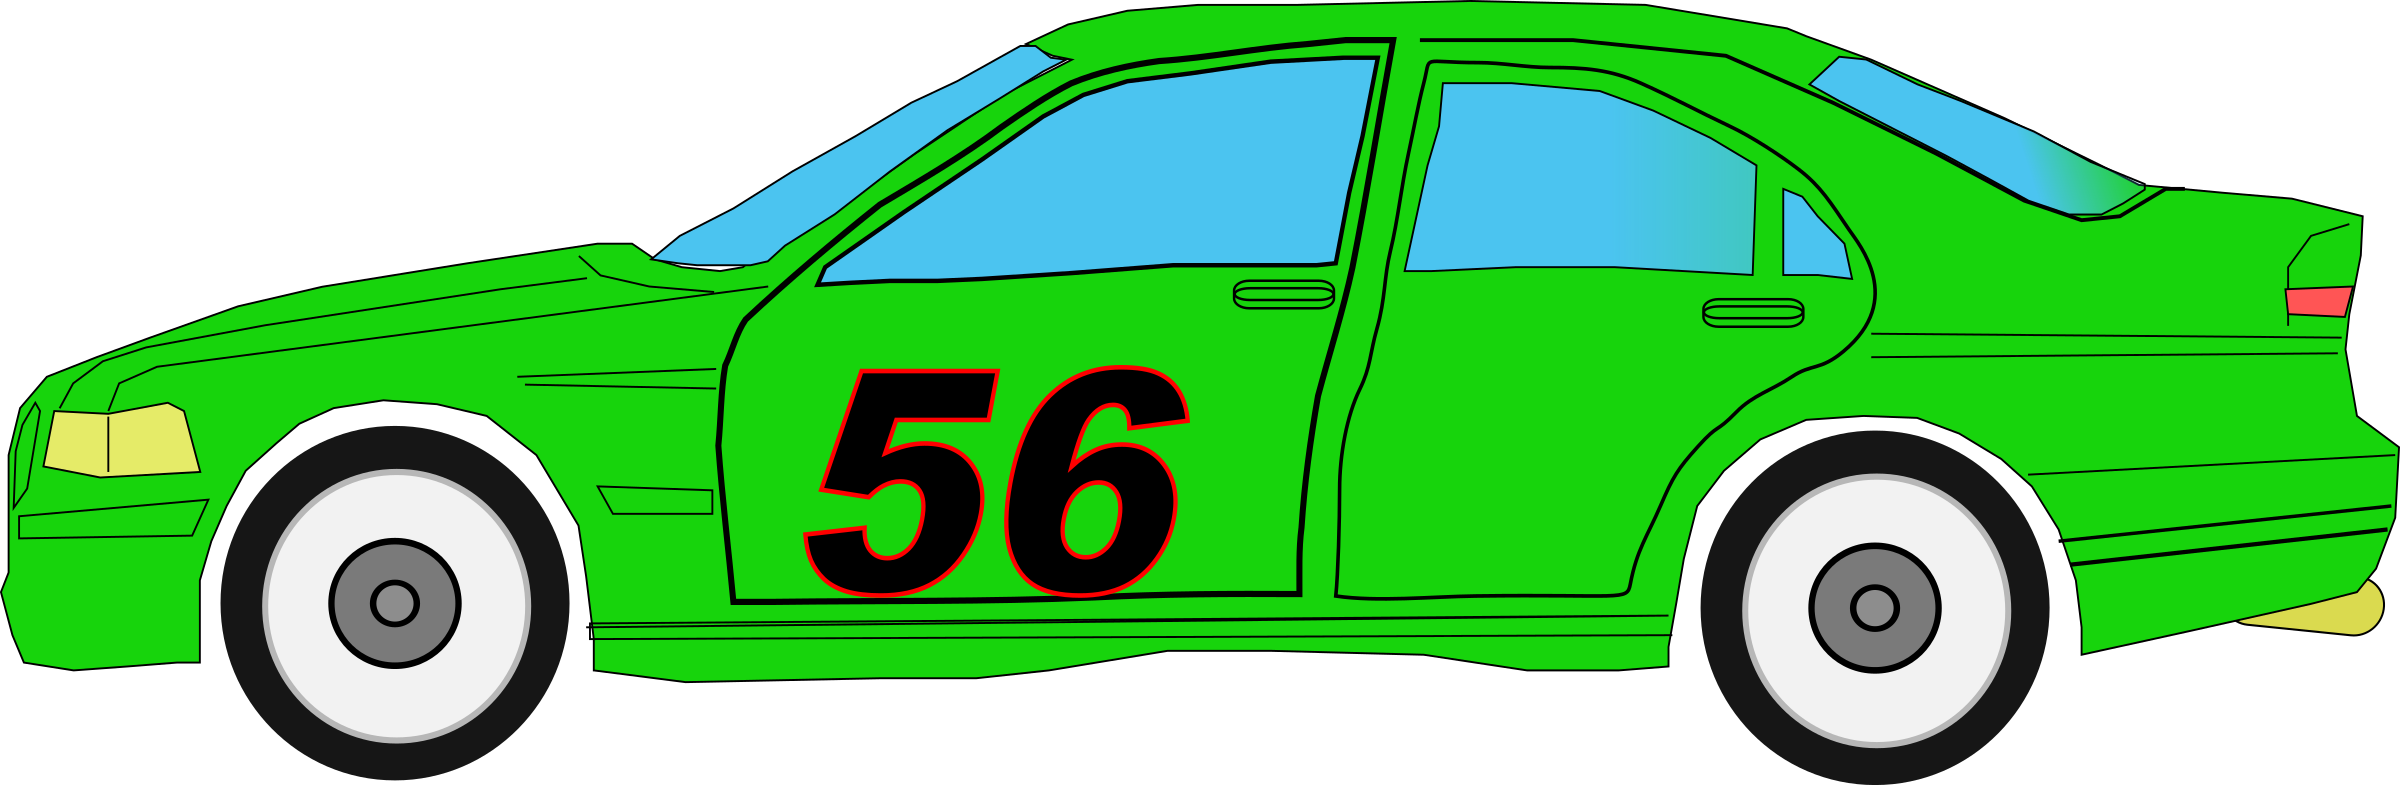 Race driver at getdrawings. Minivan clipart green car